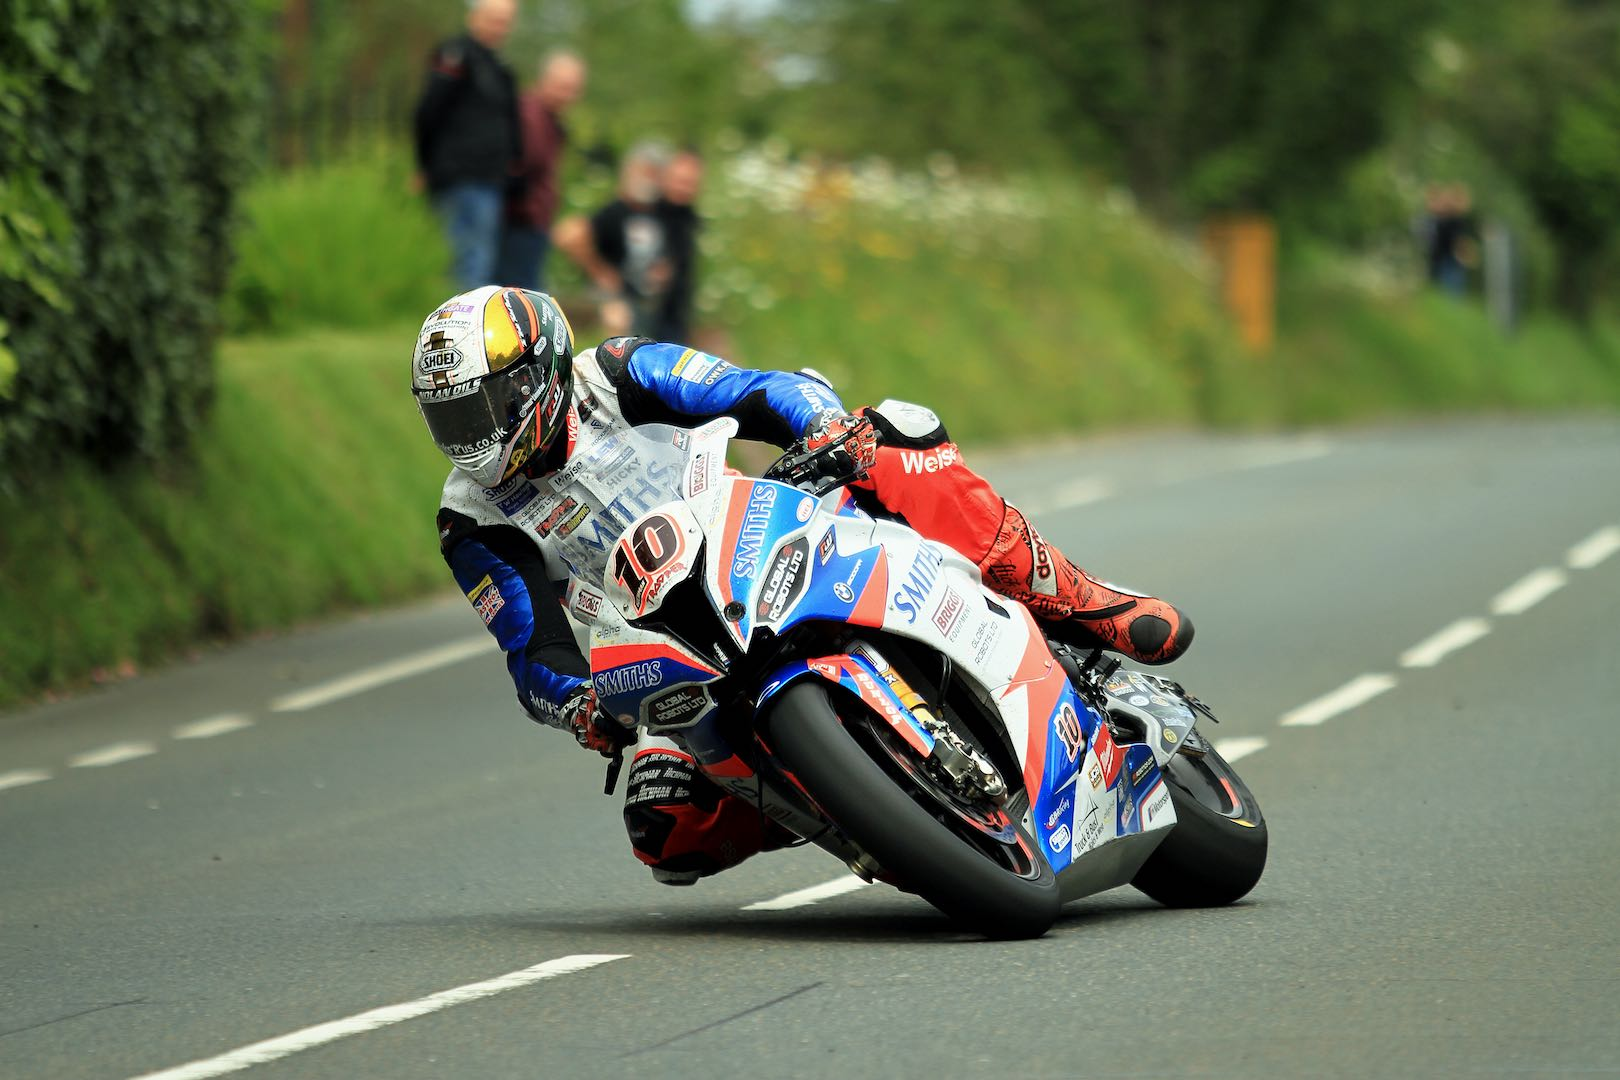 Peter Hickman Aboard BMW S 1000 RR during 2019 TT